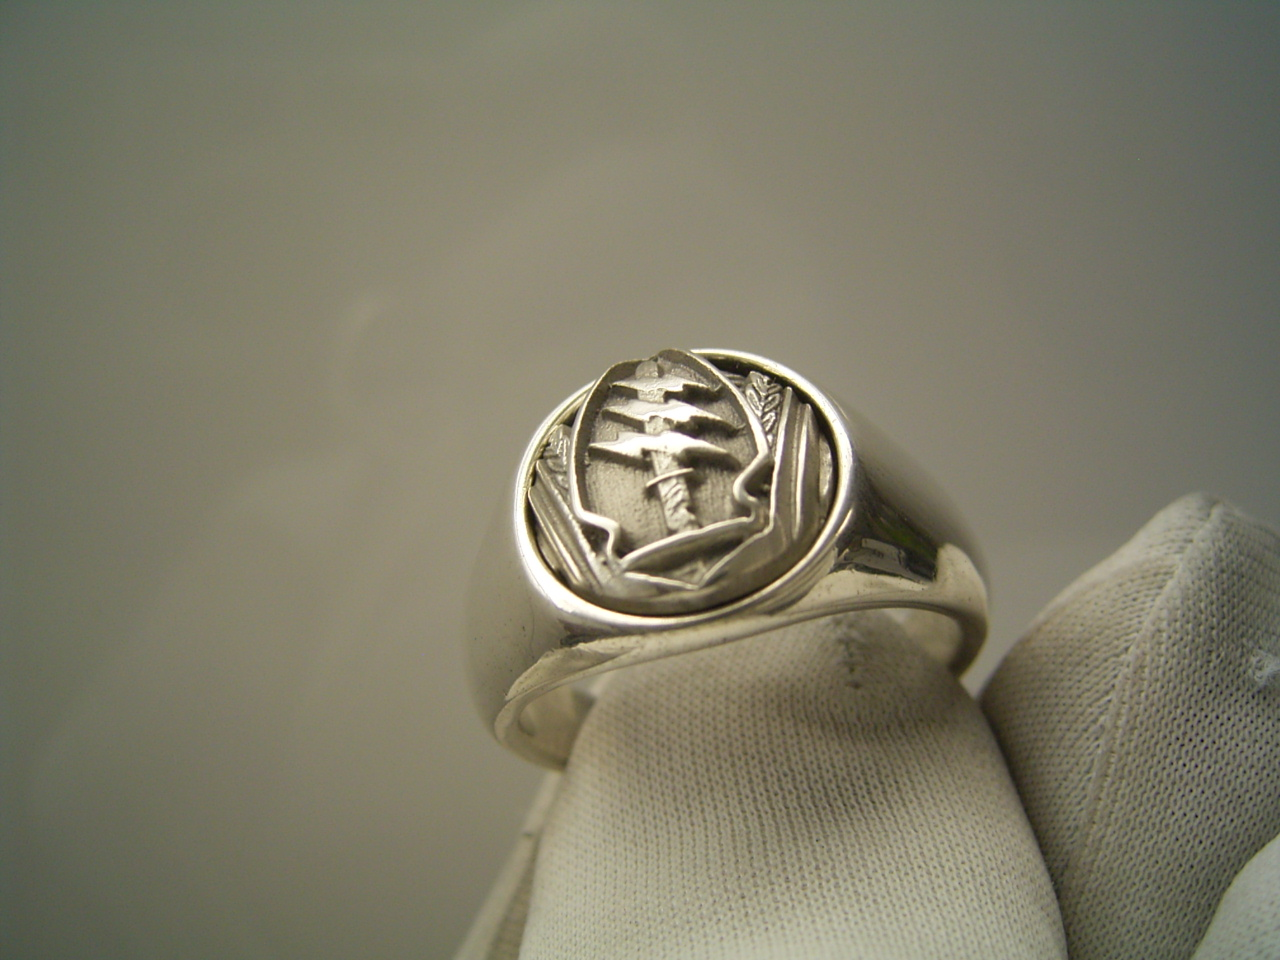 USSpecial Forces Ring